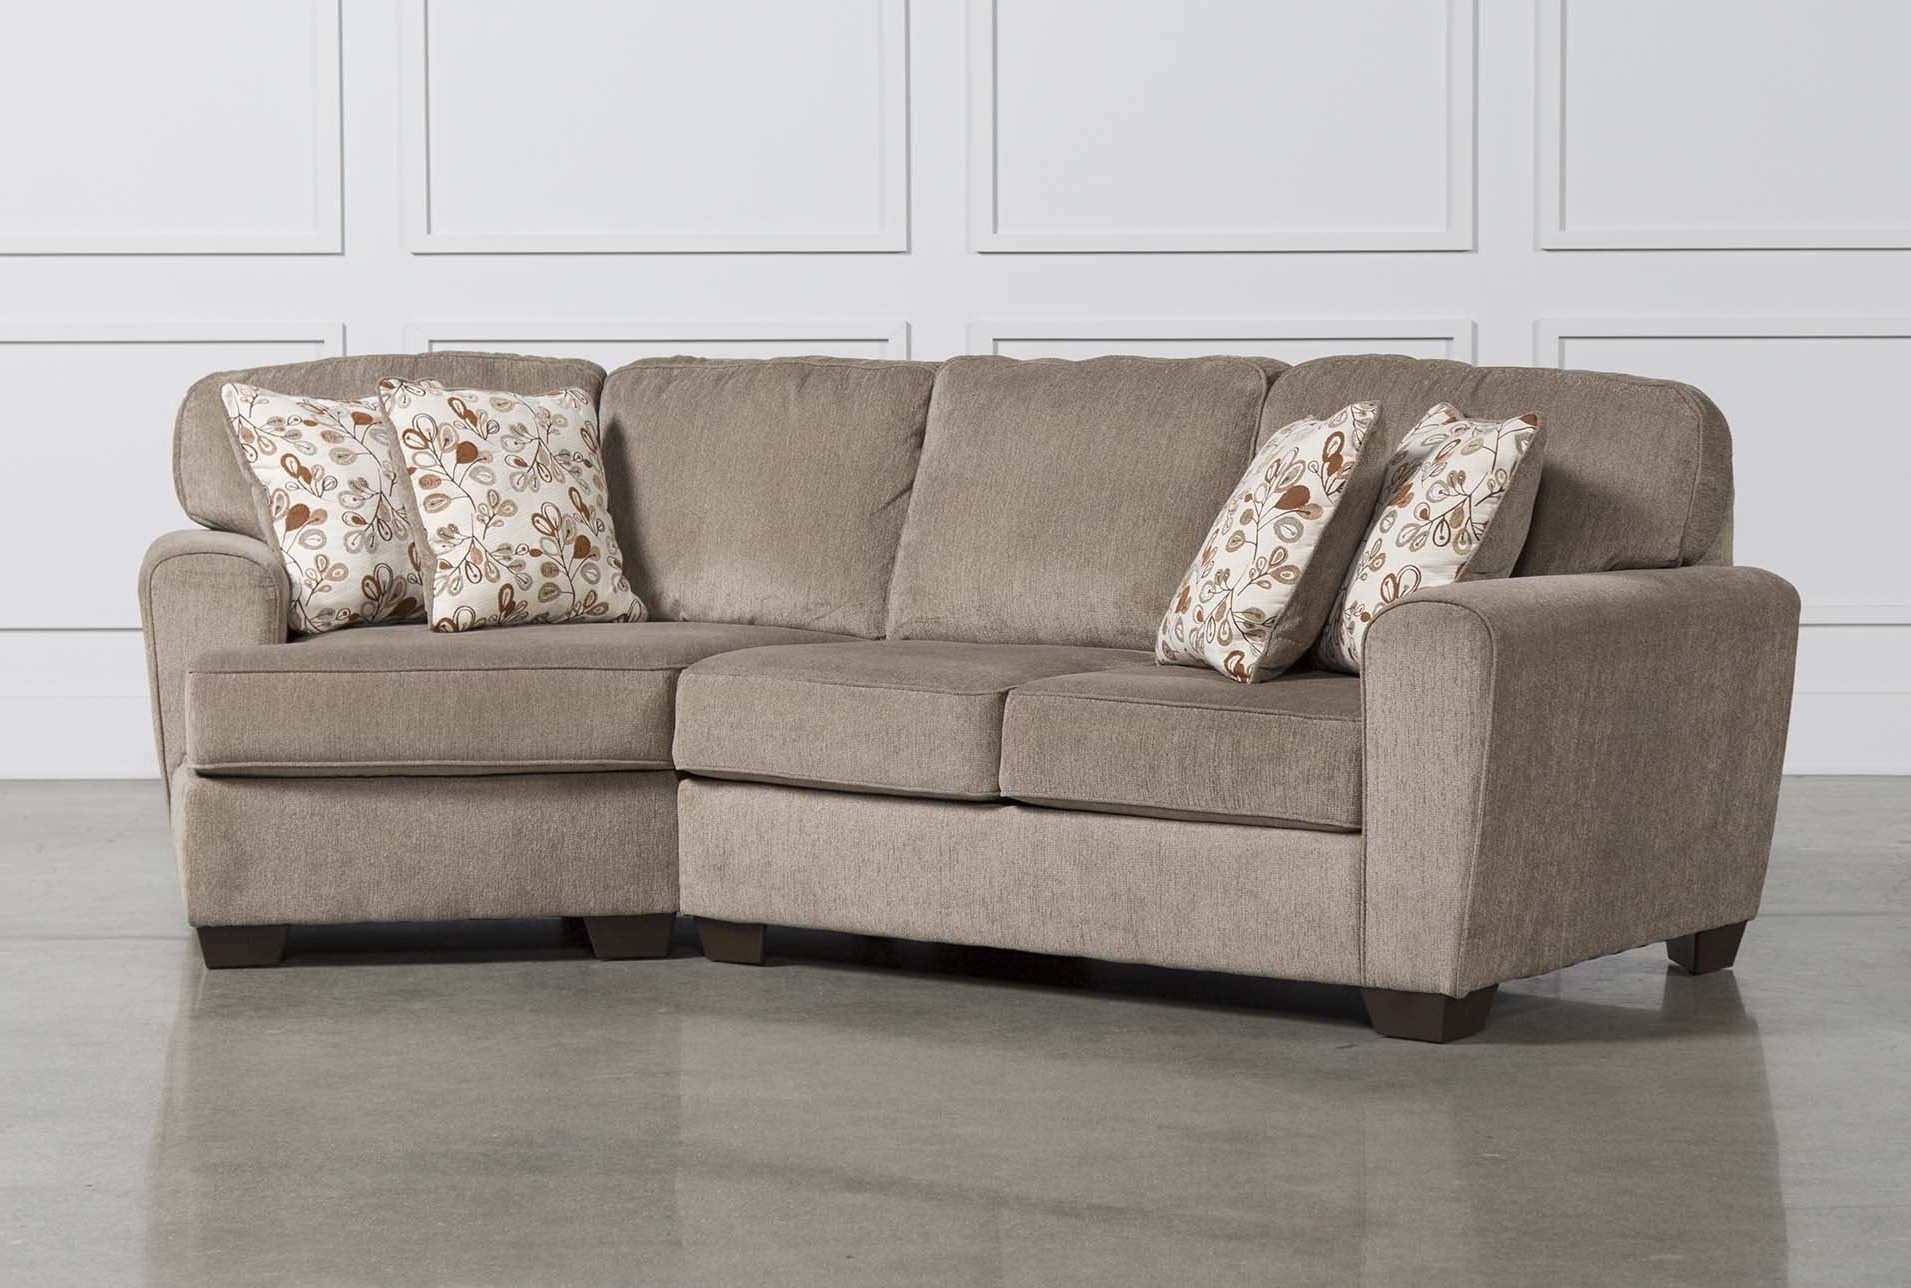 Beautiful Sectional Sofa With A Cuddler – Mediasupload In Fashionable Cuddler Sectional Sofas (View 3 of 20)